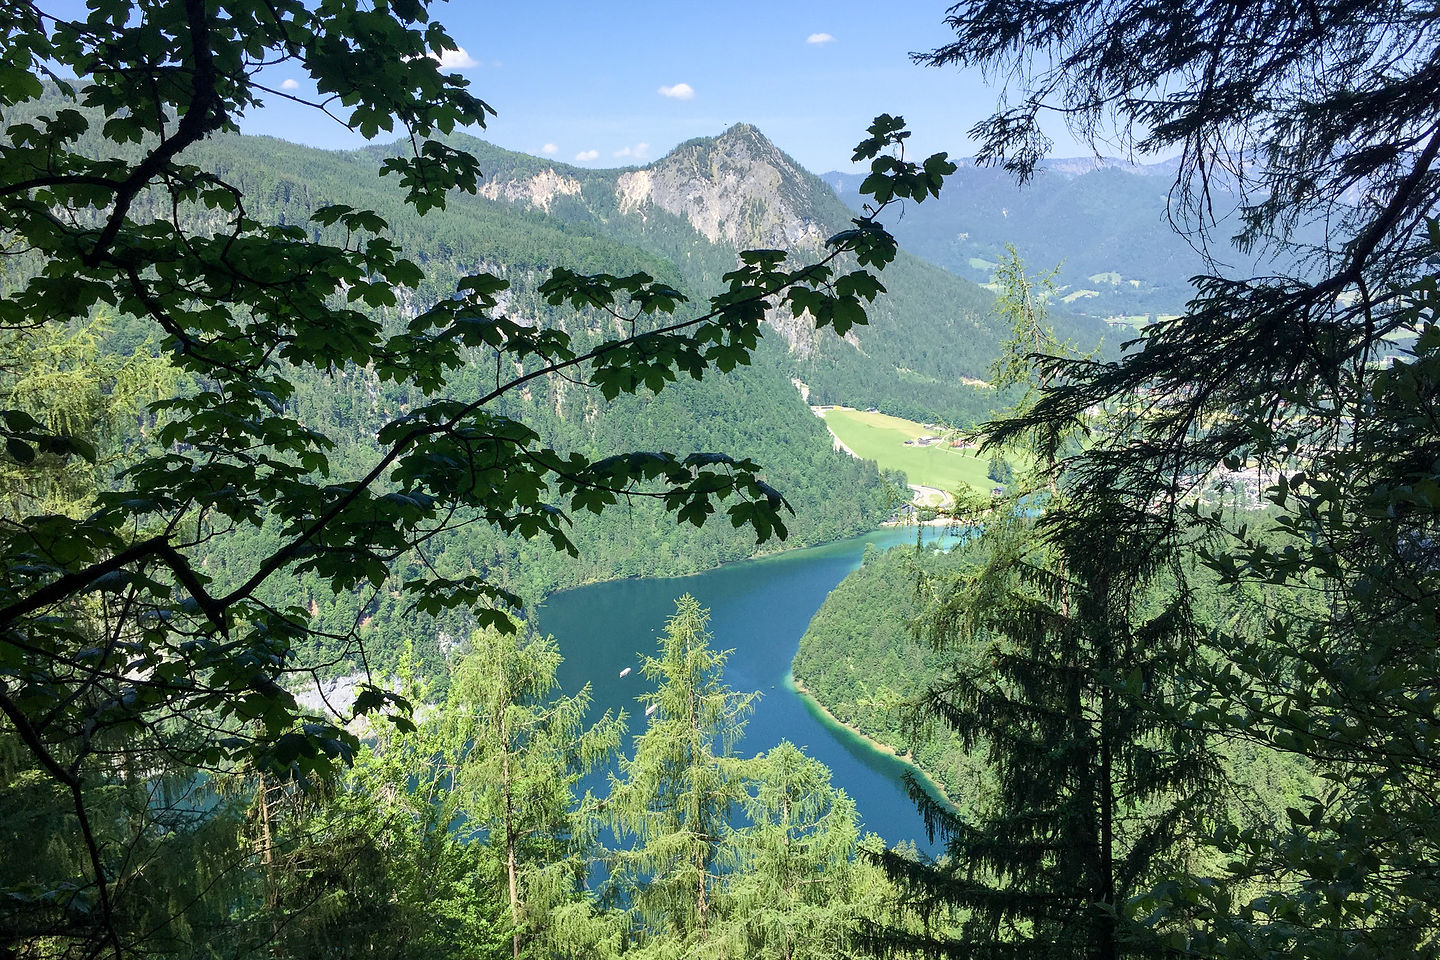 Glimpses of the Konigsee at the start of our Jenner hike